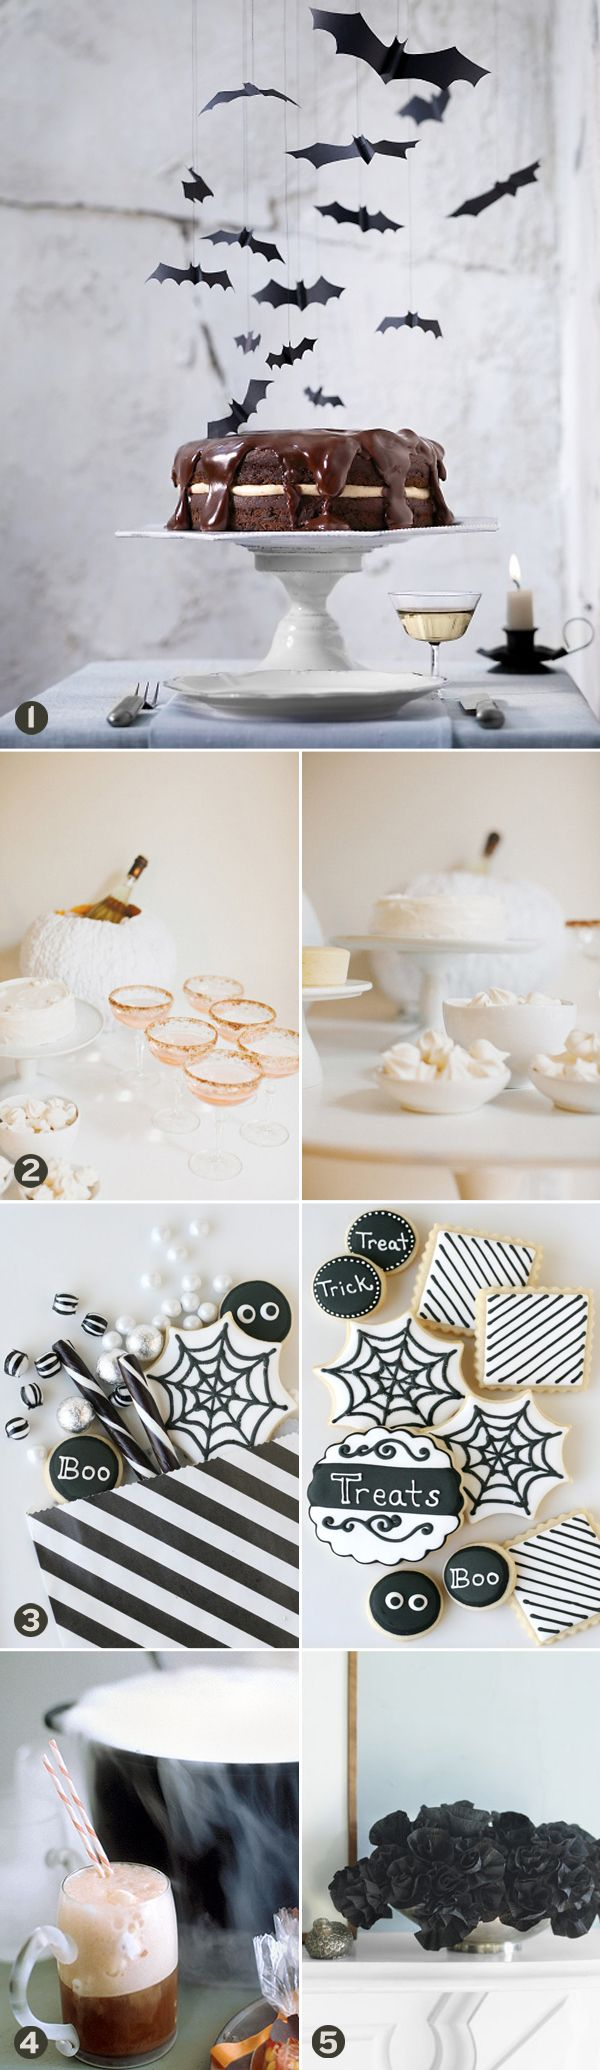 Sugar and Charm: my favorite halloween entertaining ideas